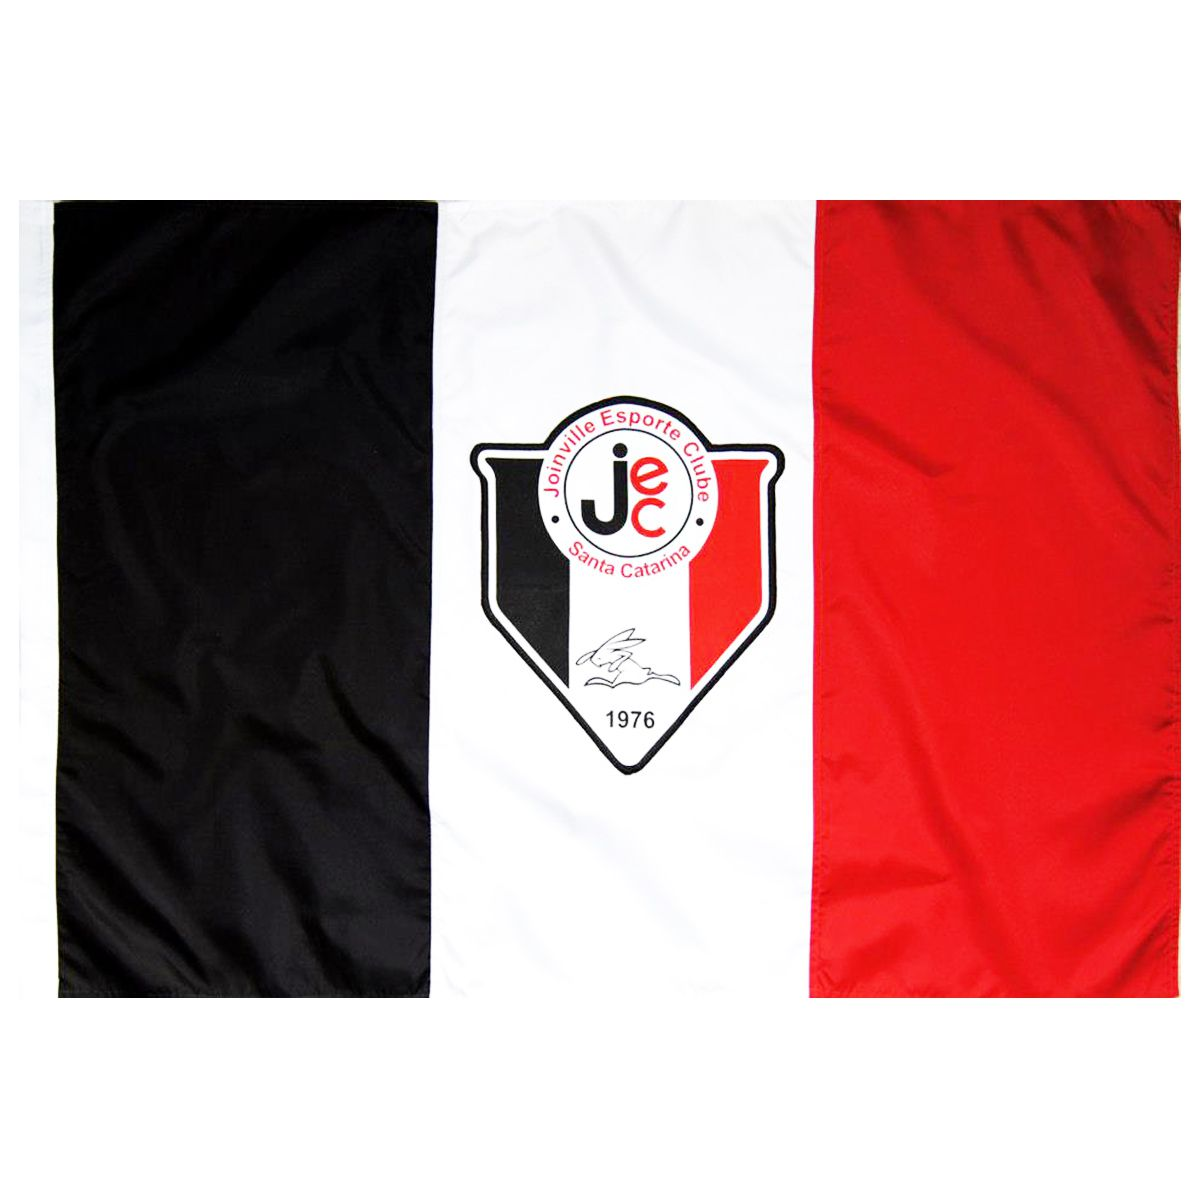 Bandeira Oficial do Joinville Mitraud 64 x 45 cm